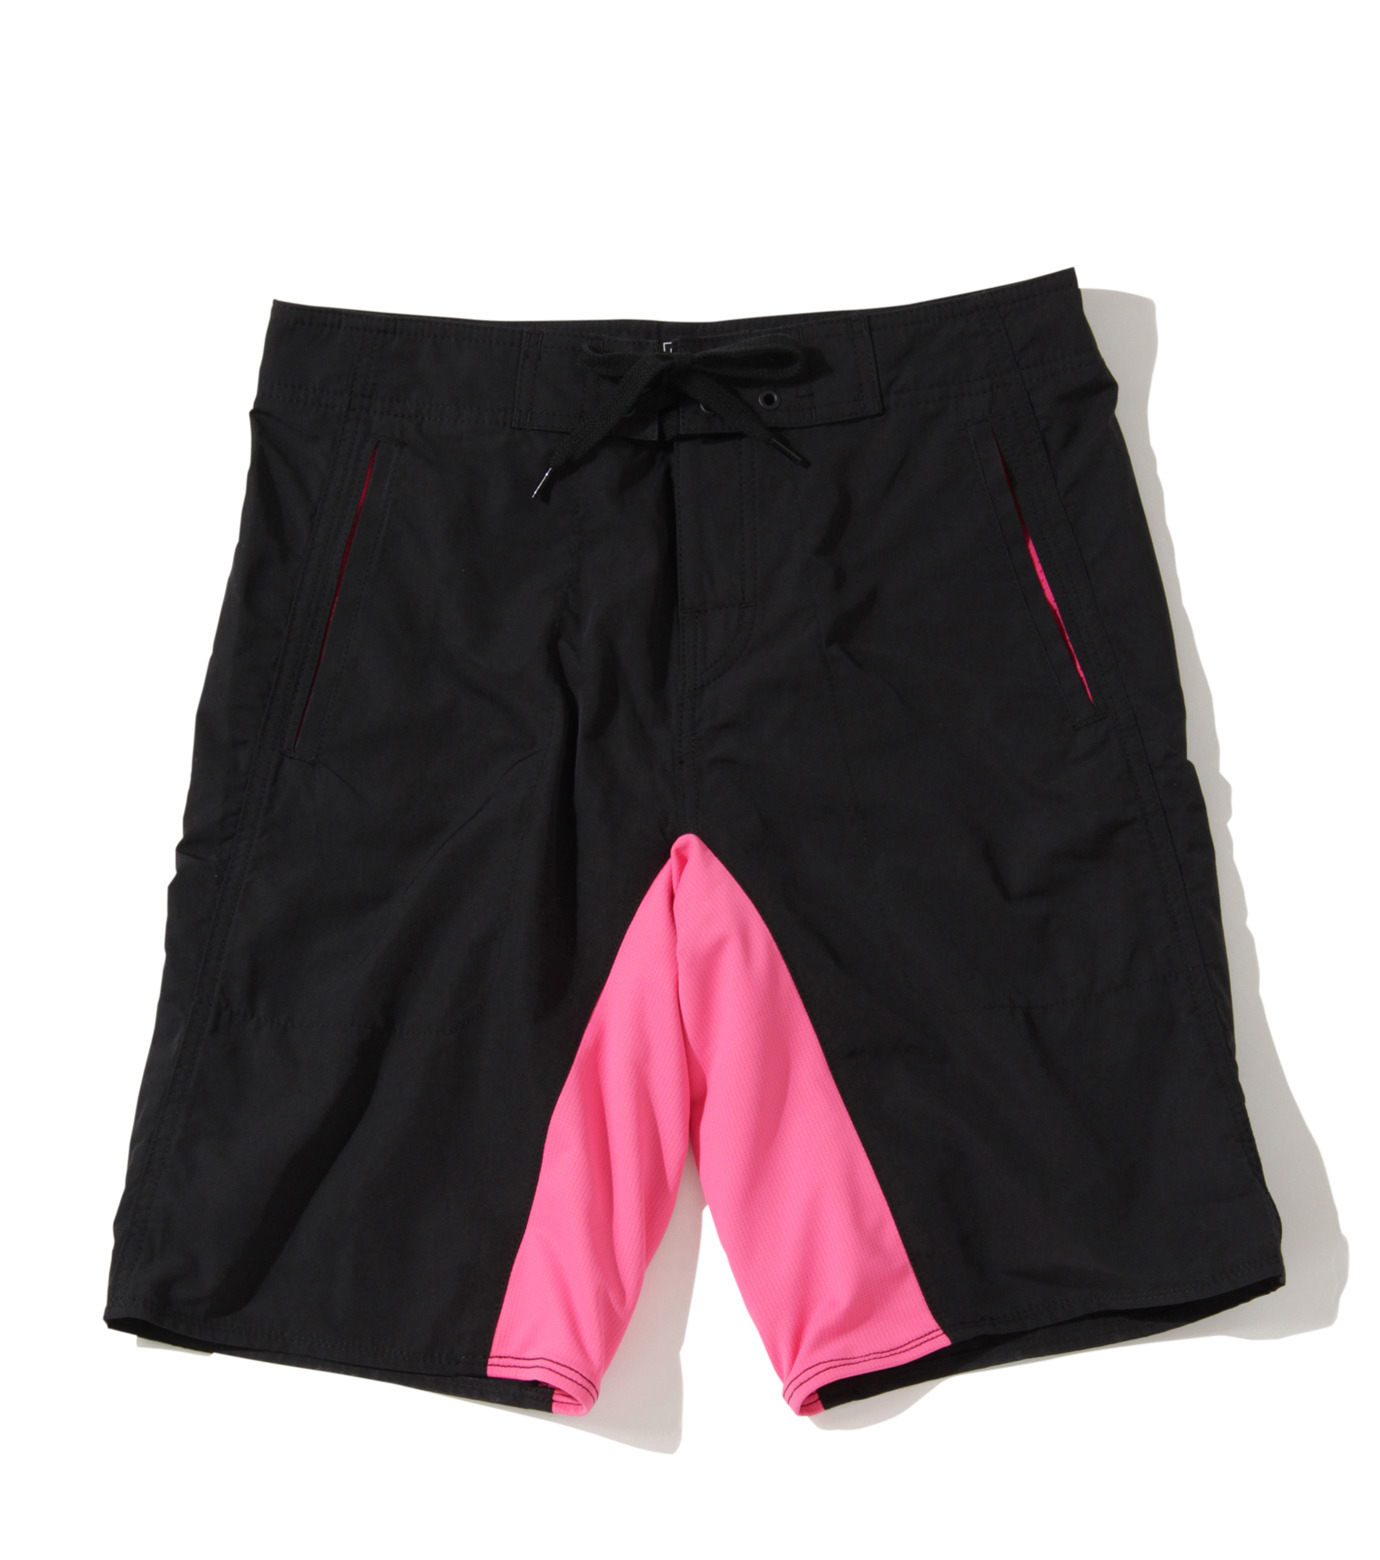 TWO TWO ONE(トゥートゥーワン)のSurf shorts long-PINK(SWIMWEAR/SWIMWEAR)-15N948002-72 拡大詳細画像1